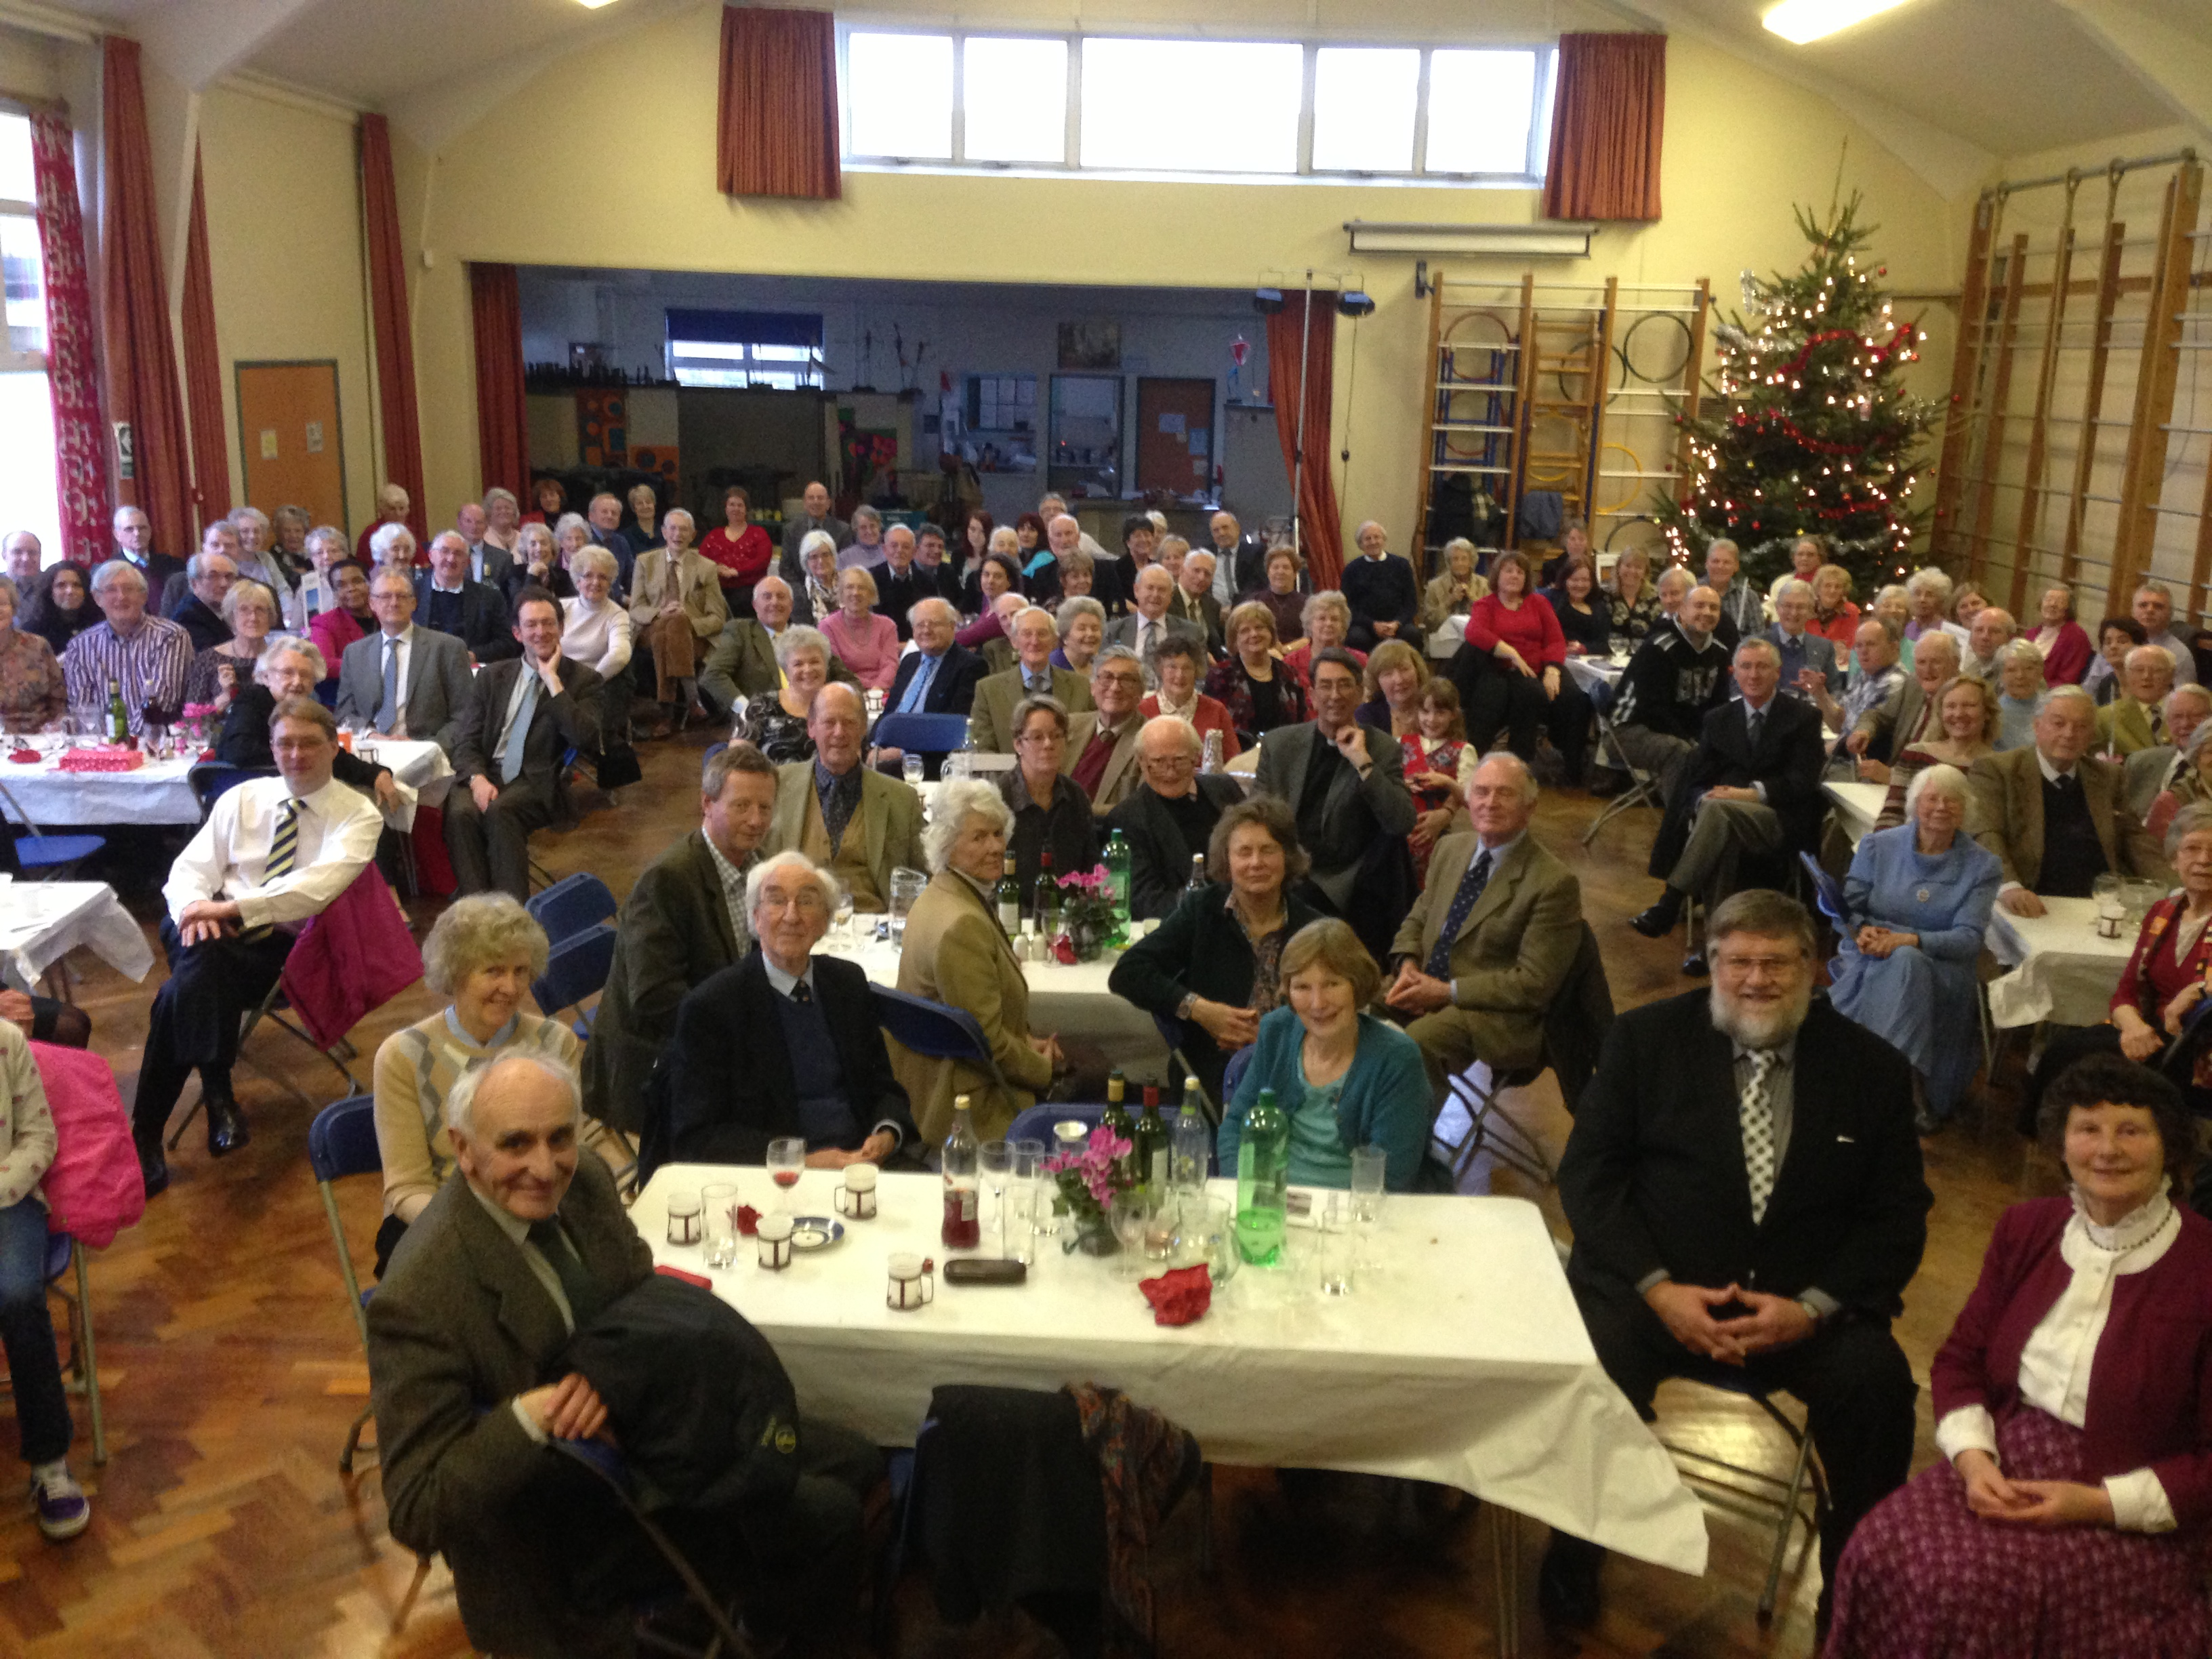 Lunch to Celebrate the Retirement of John Wright, Rector of St Marys, Jan 2013